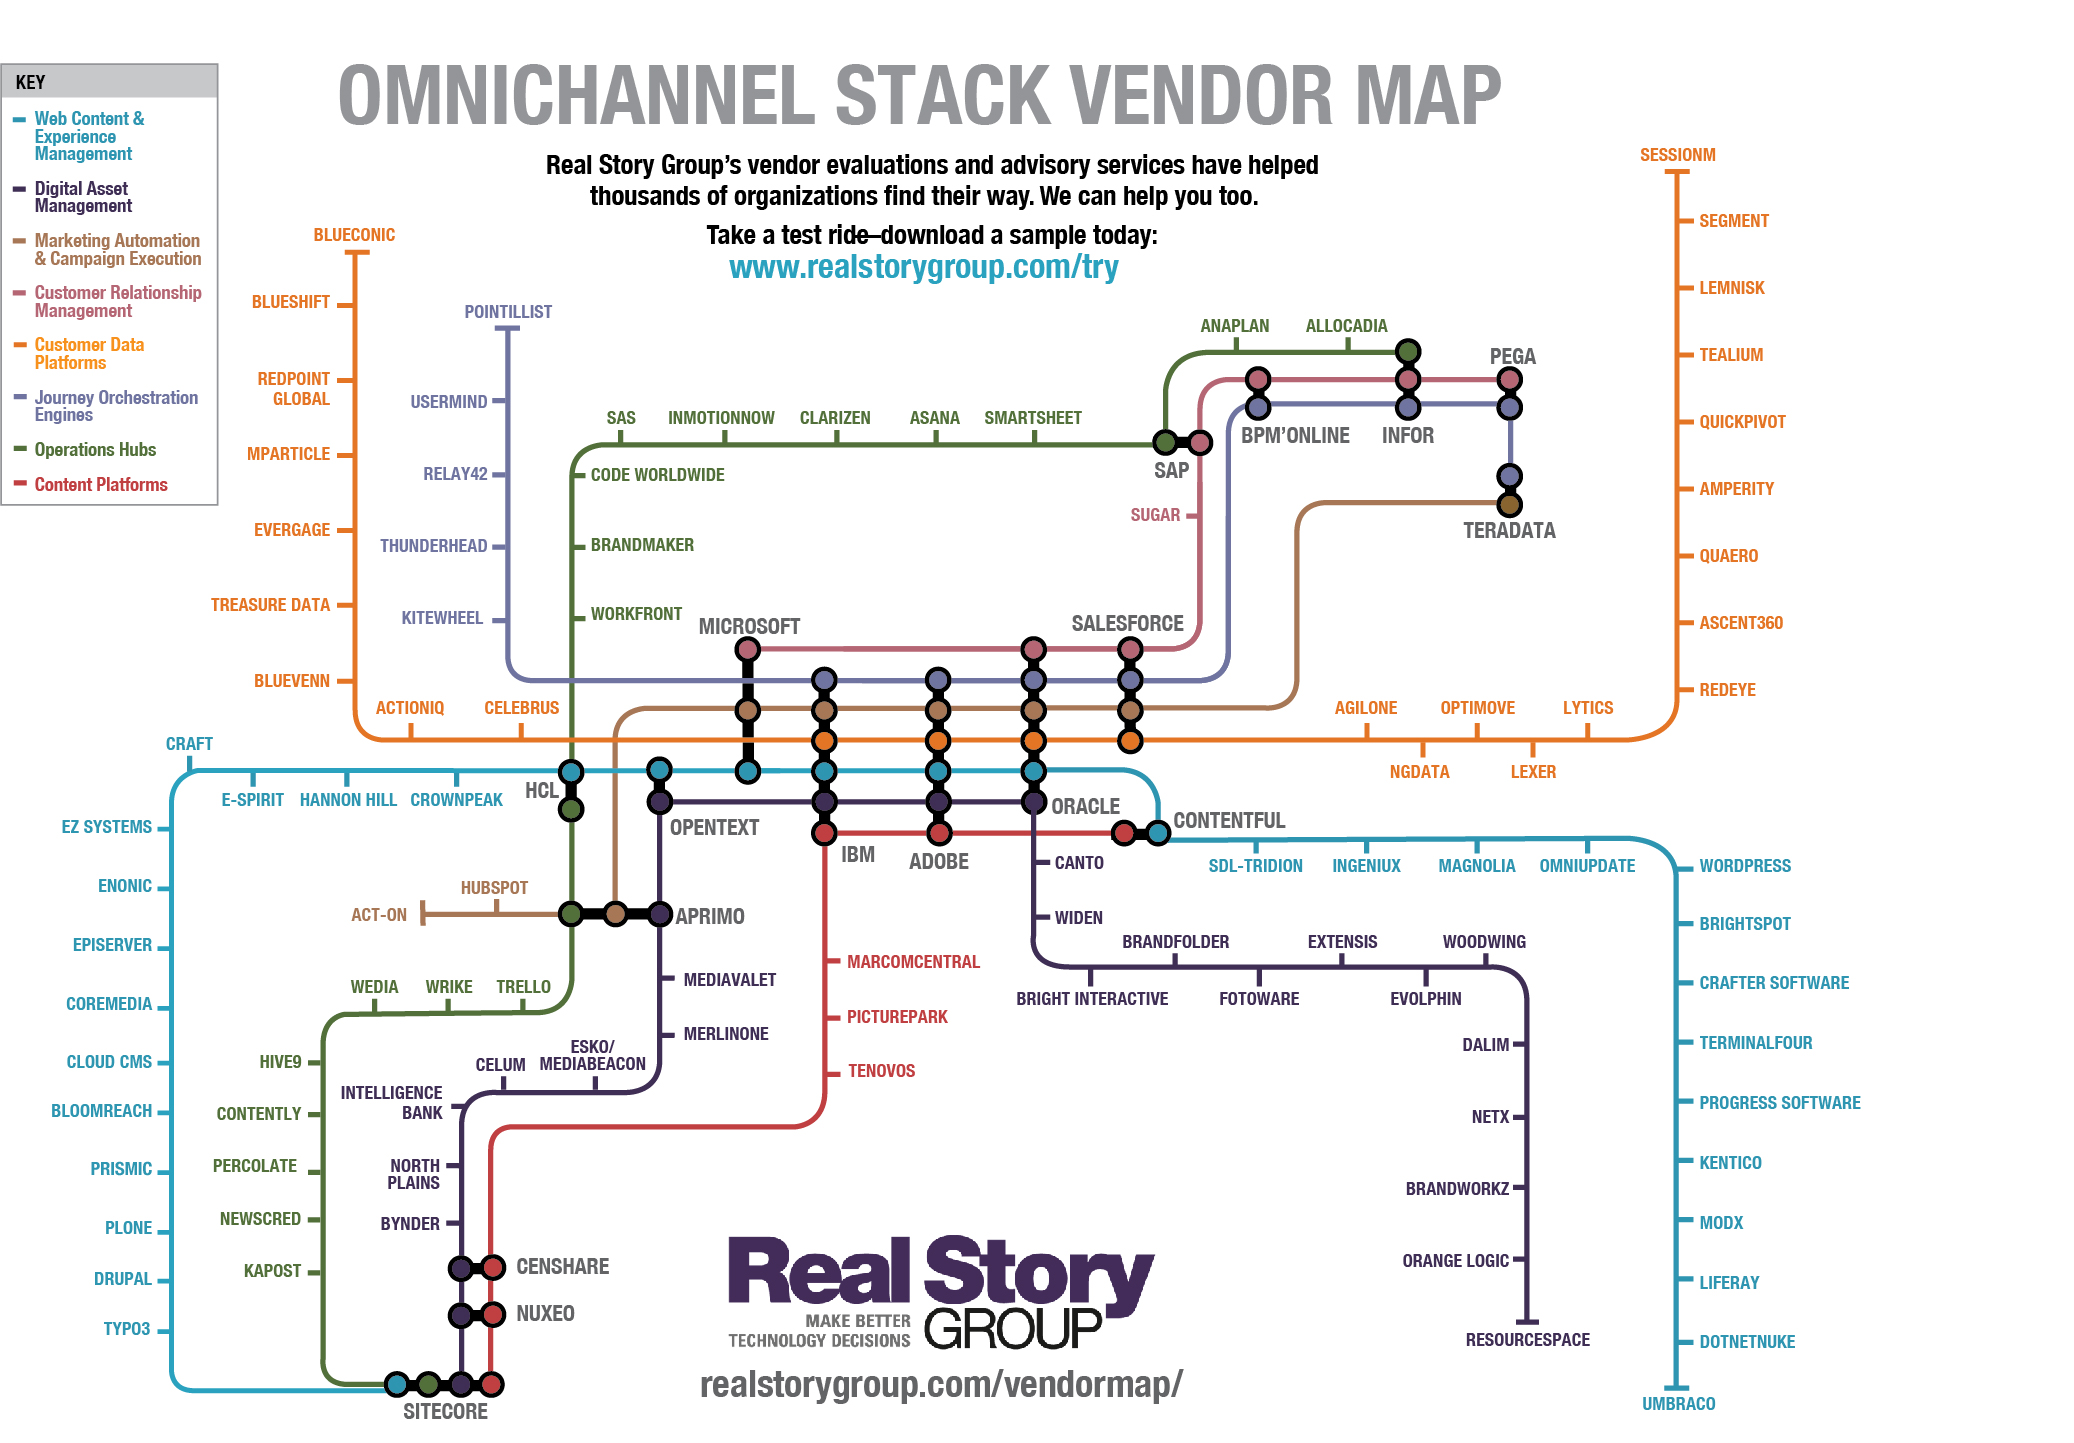 [Webinar] 2019 Omnichannel Vendor Map